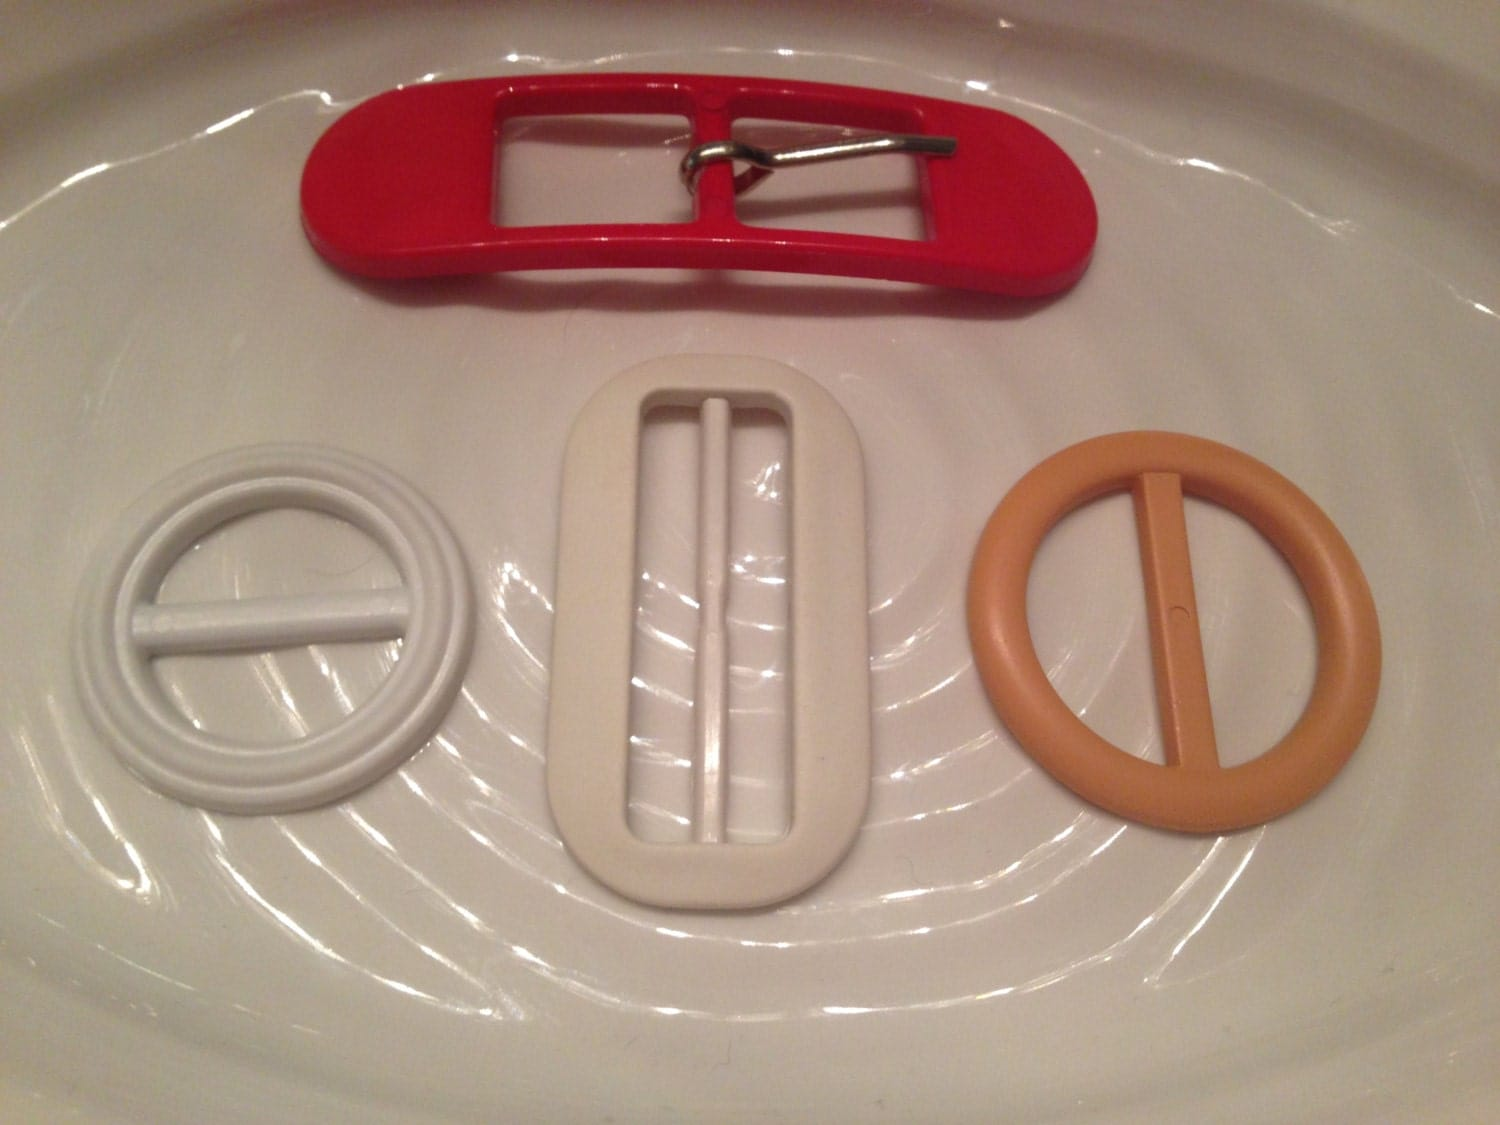 4 Vintage Plastic Belt Buckles Red White And By Craftydestashy